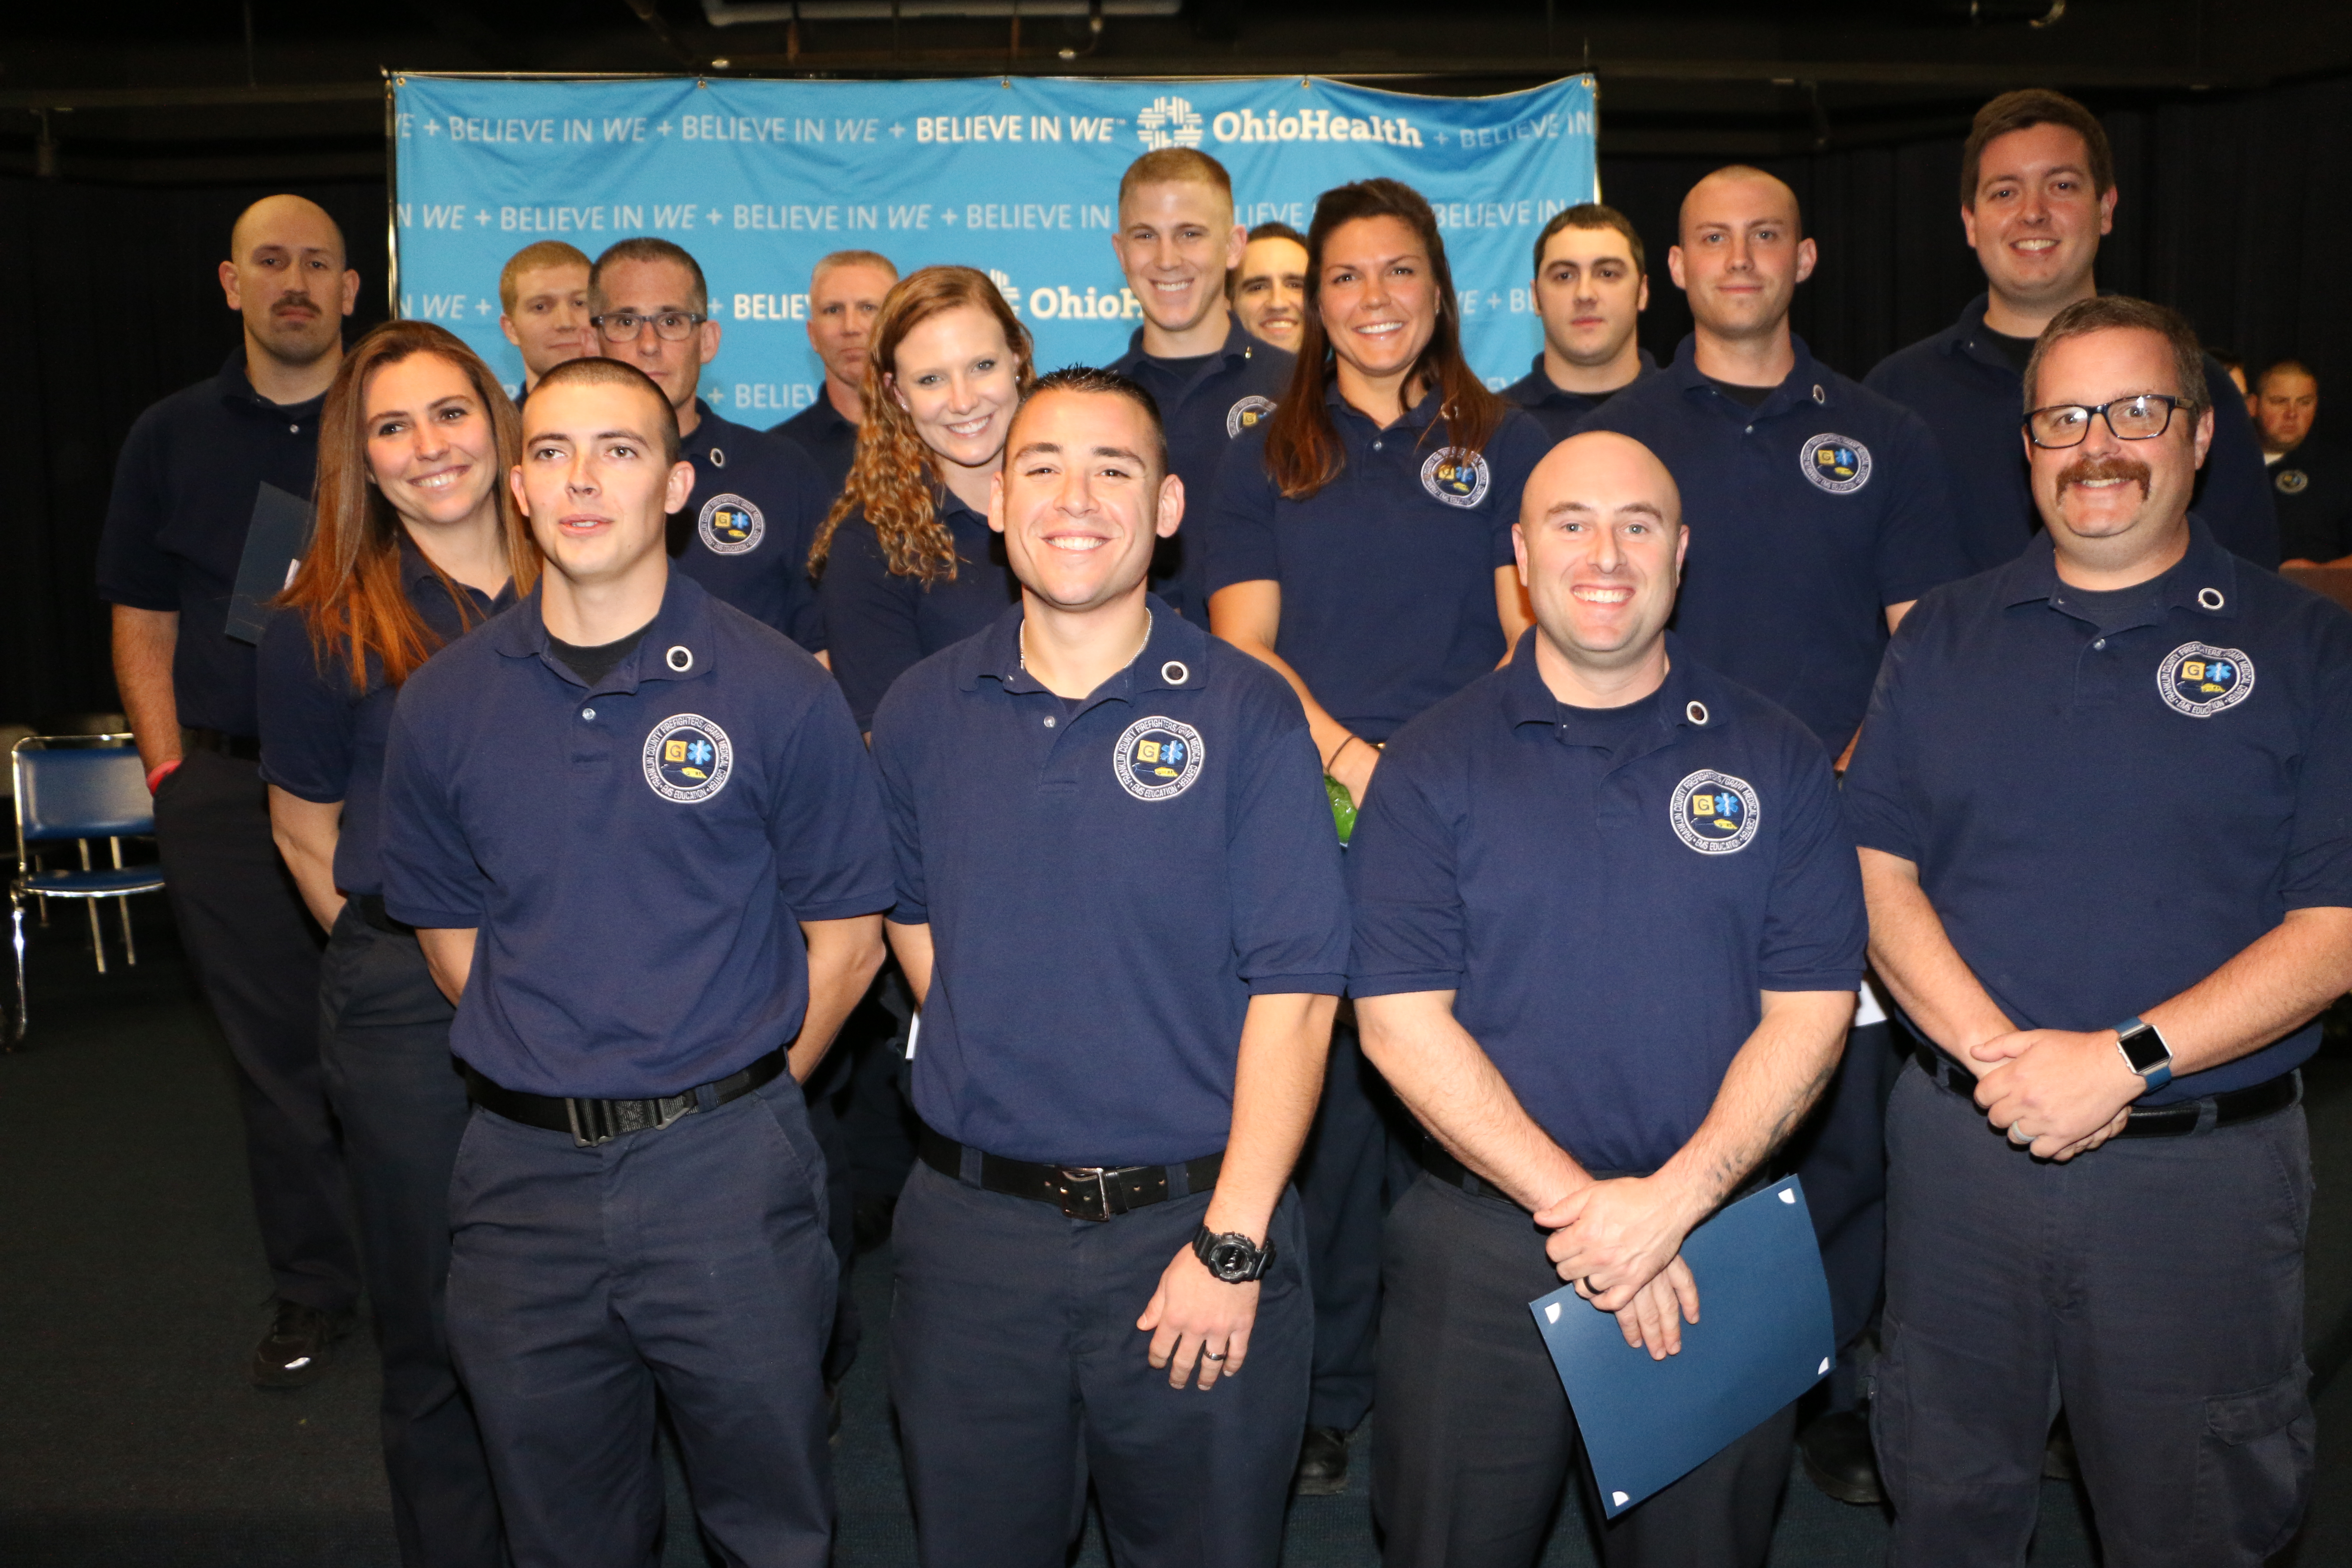 Ohiohealth grant ohiohealth ems did you know that central ohios only hospital or health system based ems school is at ohiohealth grant medical center the school located in the 393 e 1betcityfo Gallery